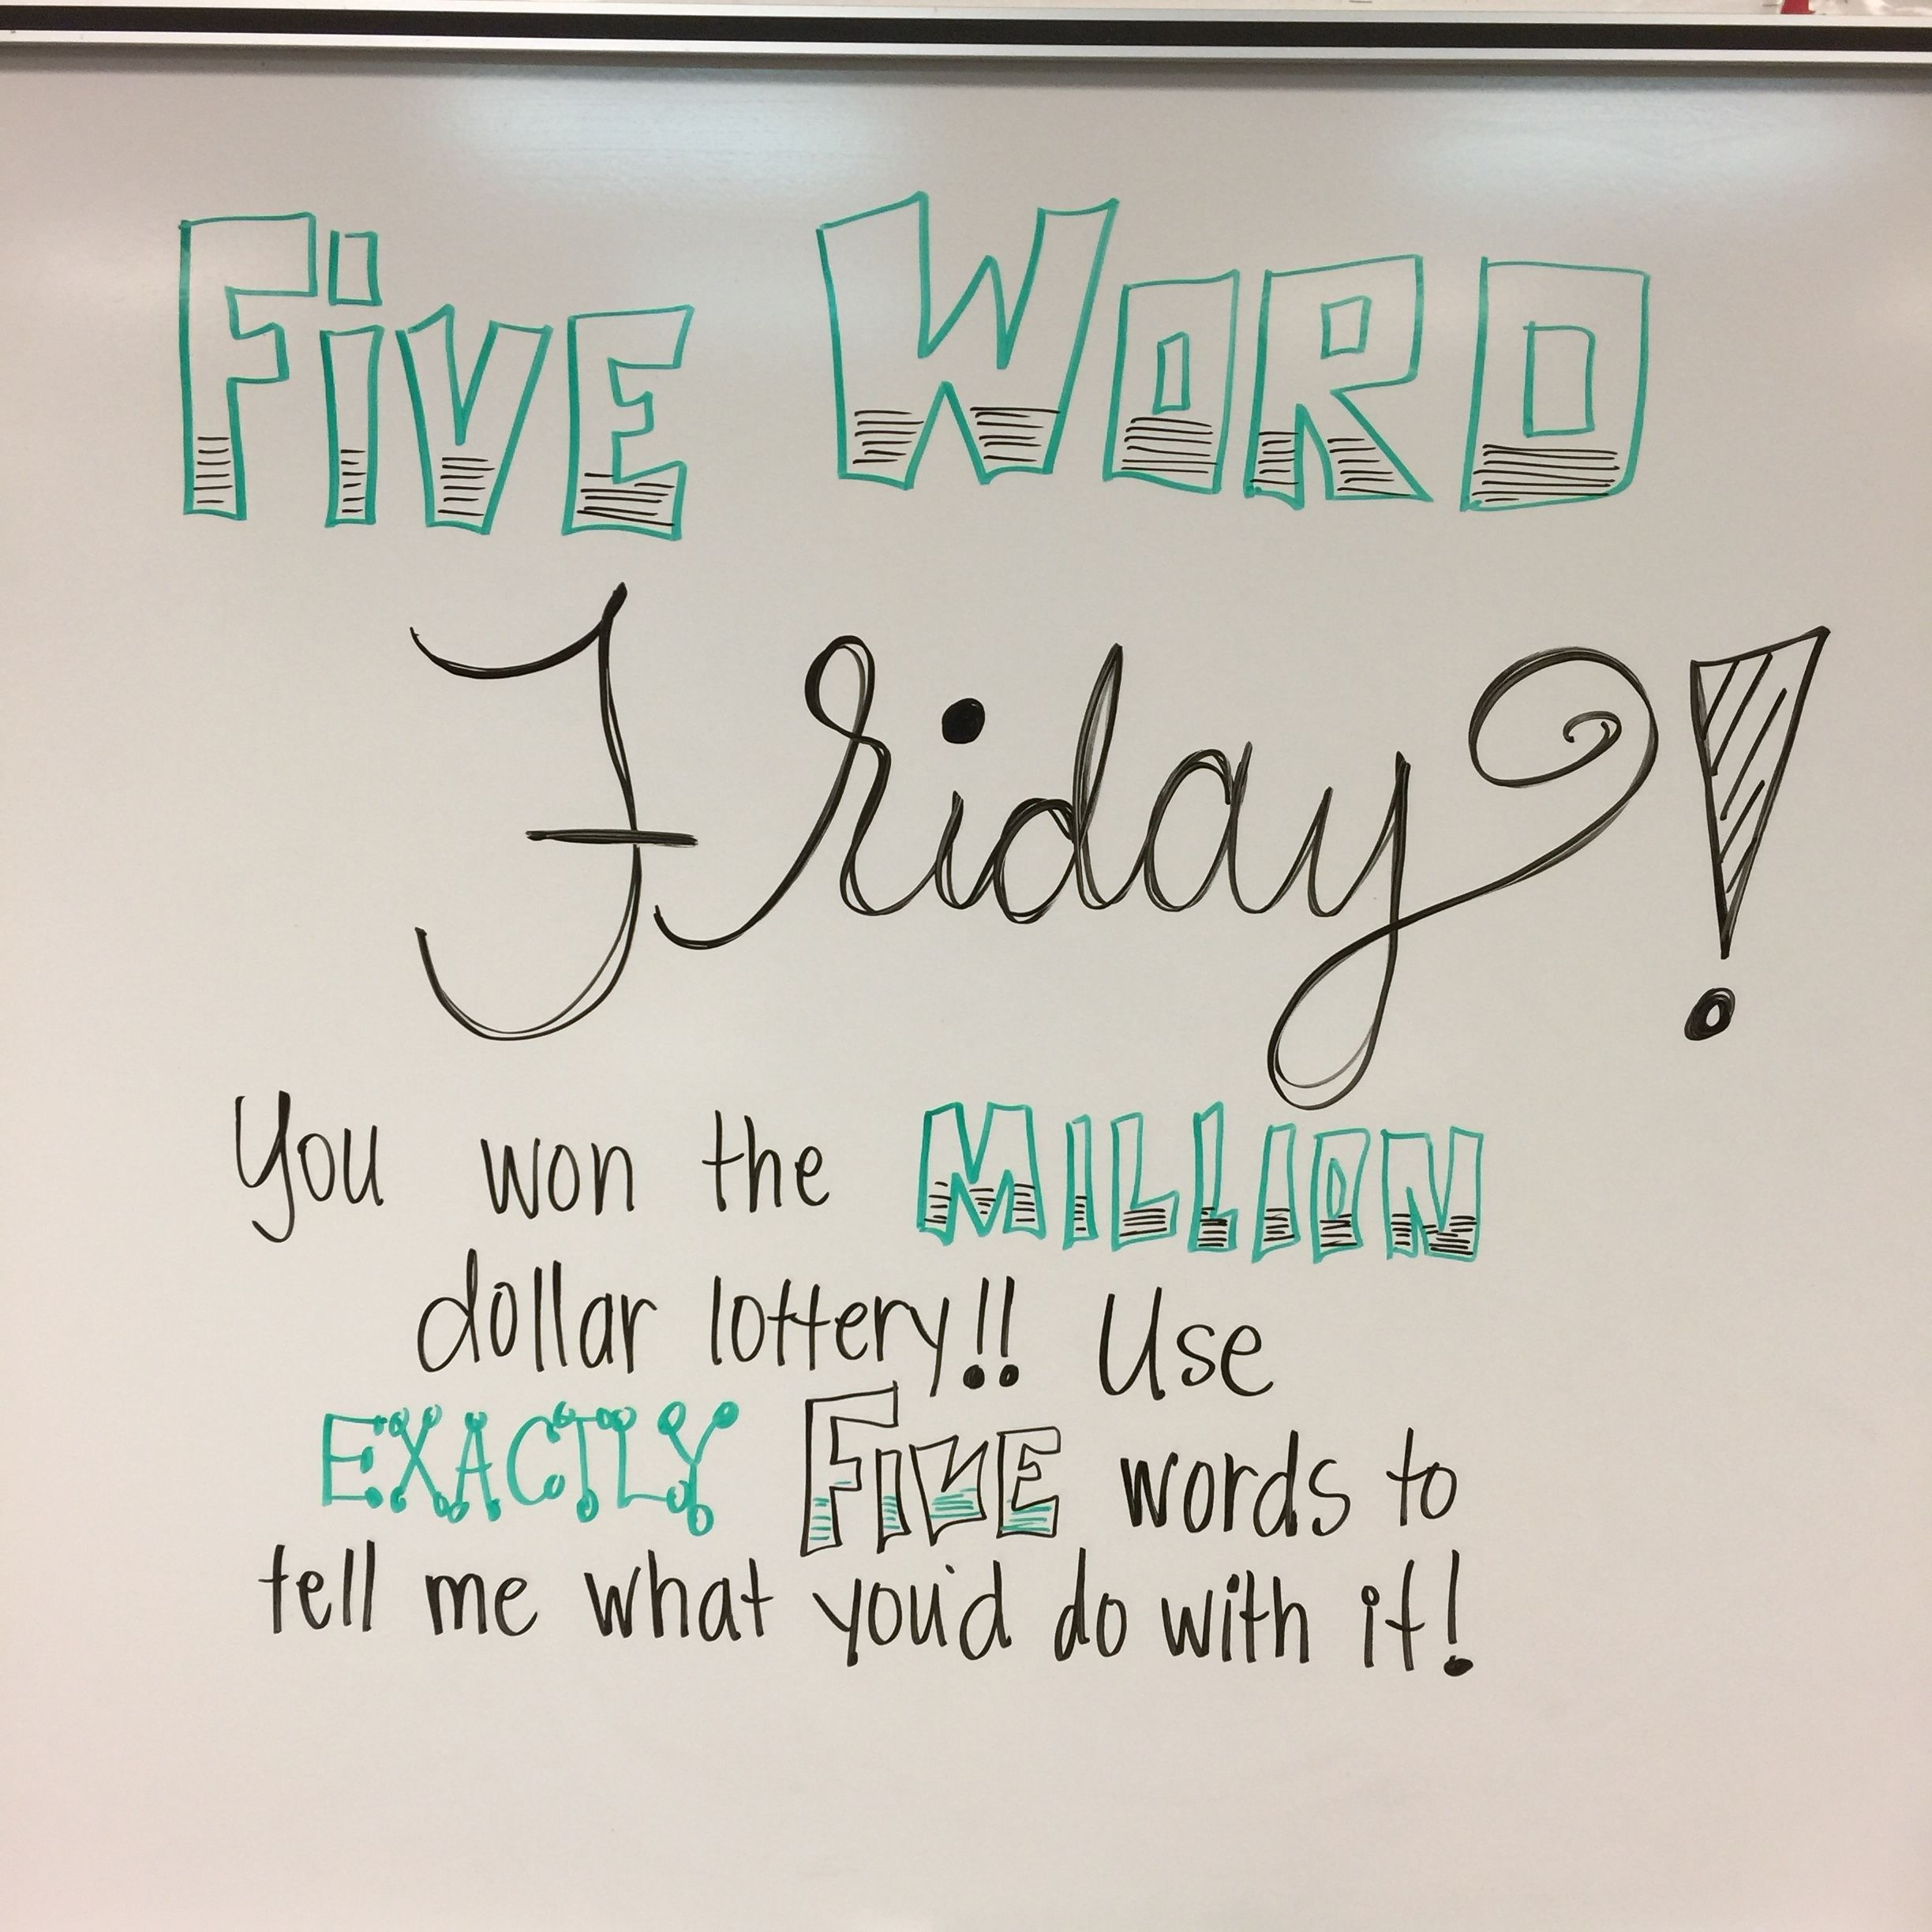 White Board Messages For Five Word Friday